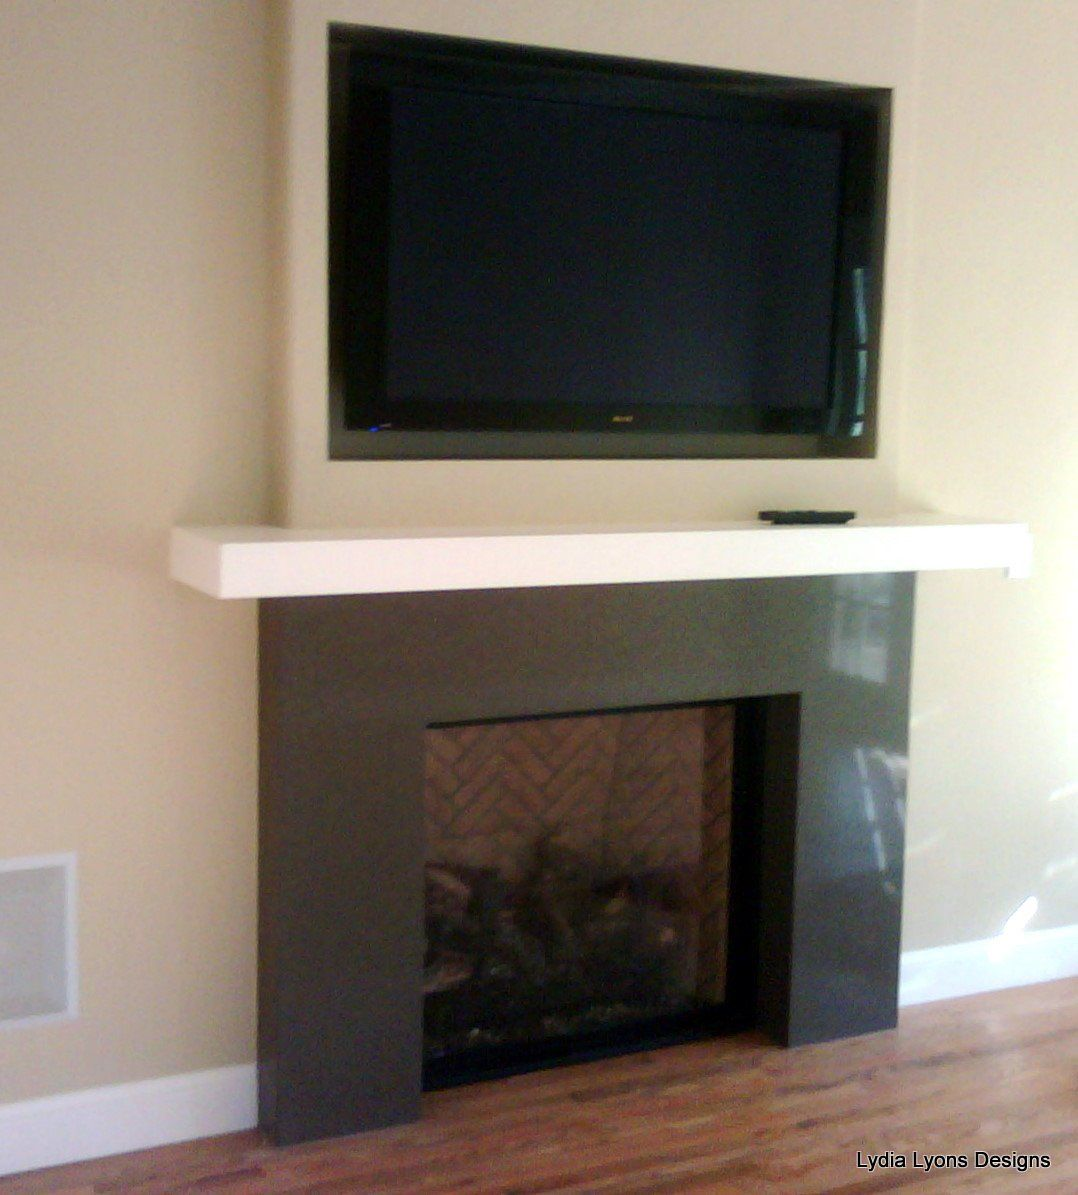 Recessed Tv Over Fireplace Basement Renovation Tv Over Fireplace